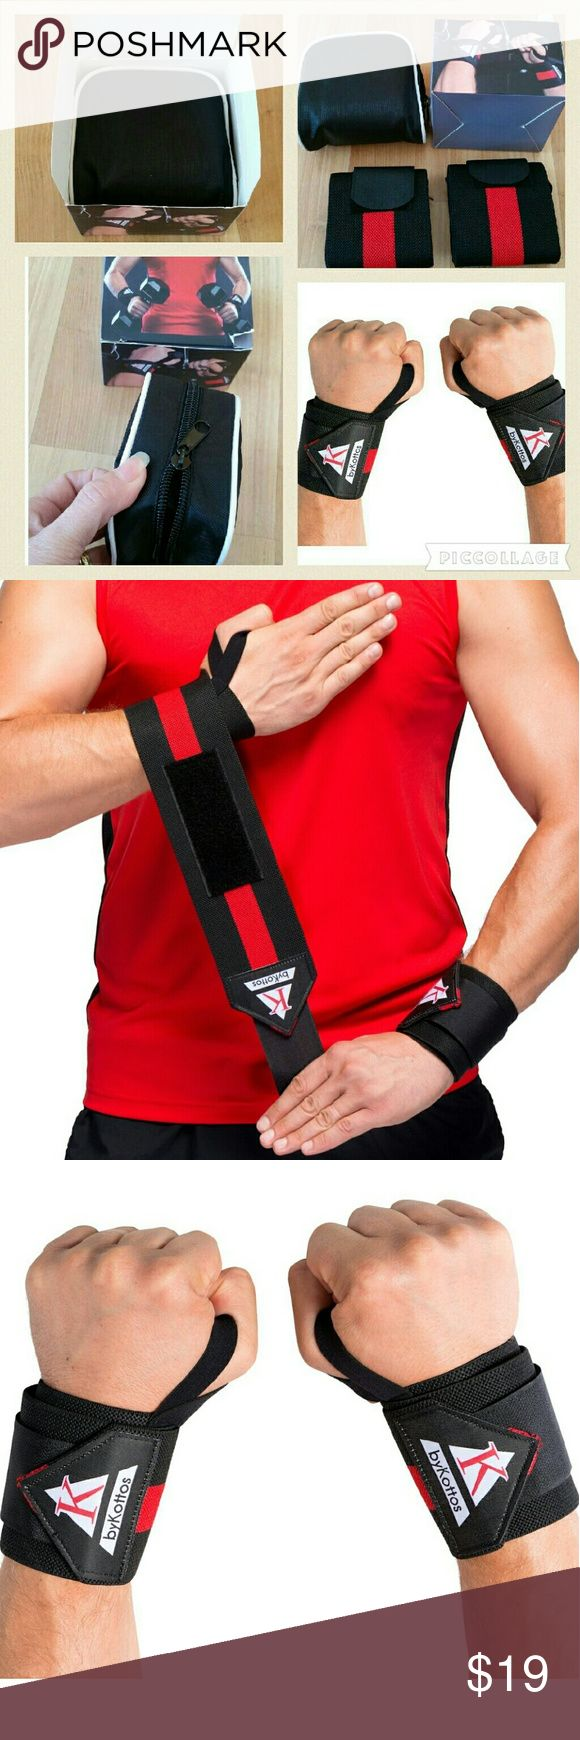 ADJUSTABLE WRIST SUPPORT BRACES BRAND NEW : Wrist Wraps Weight Lifting + Zipper Pouch-Full Protection Strength Straps-Adjustable Wrist Support Braces for Safe Weightlifting, Powerlifting Crossfit Wrist Wraps for Bodybuilding  CHECK OUT MY OTHER LISTINGS FOR MORE BRAND NEW VARIETY ITEM'S WITH STILL ON EACH ORIGINAL PACKAGING! ! AND GET DISCOUNT WHEN BUNDLING,PLEASE MESSAGE ME ANYTIME WITH THE ITEMS YOU LIKE THEN I WILL MAKE SPECIAL BUNDLE FOR YOU..HAPPY SHOPPING! ! !  NOTE : MORE FITNESS…